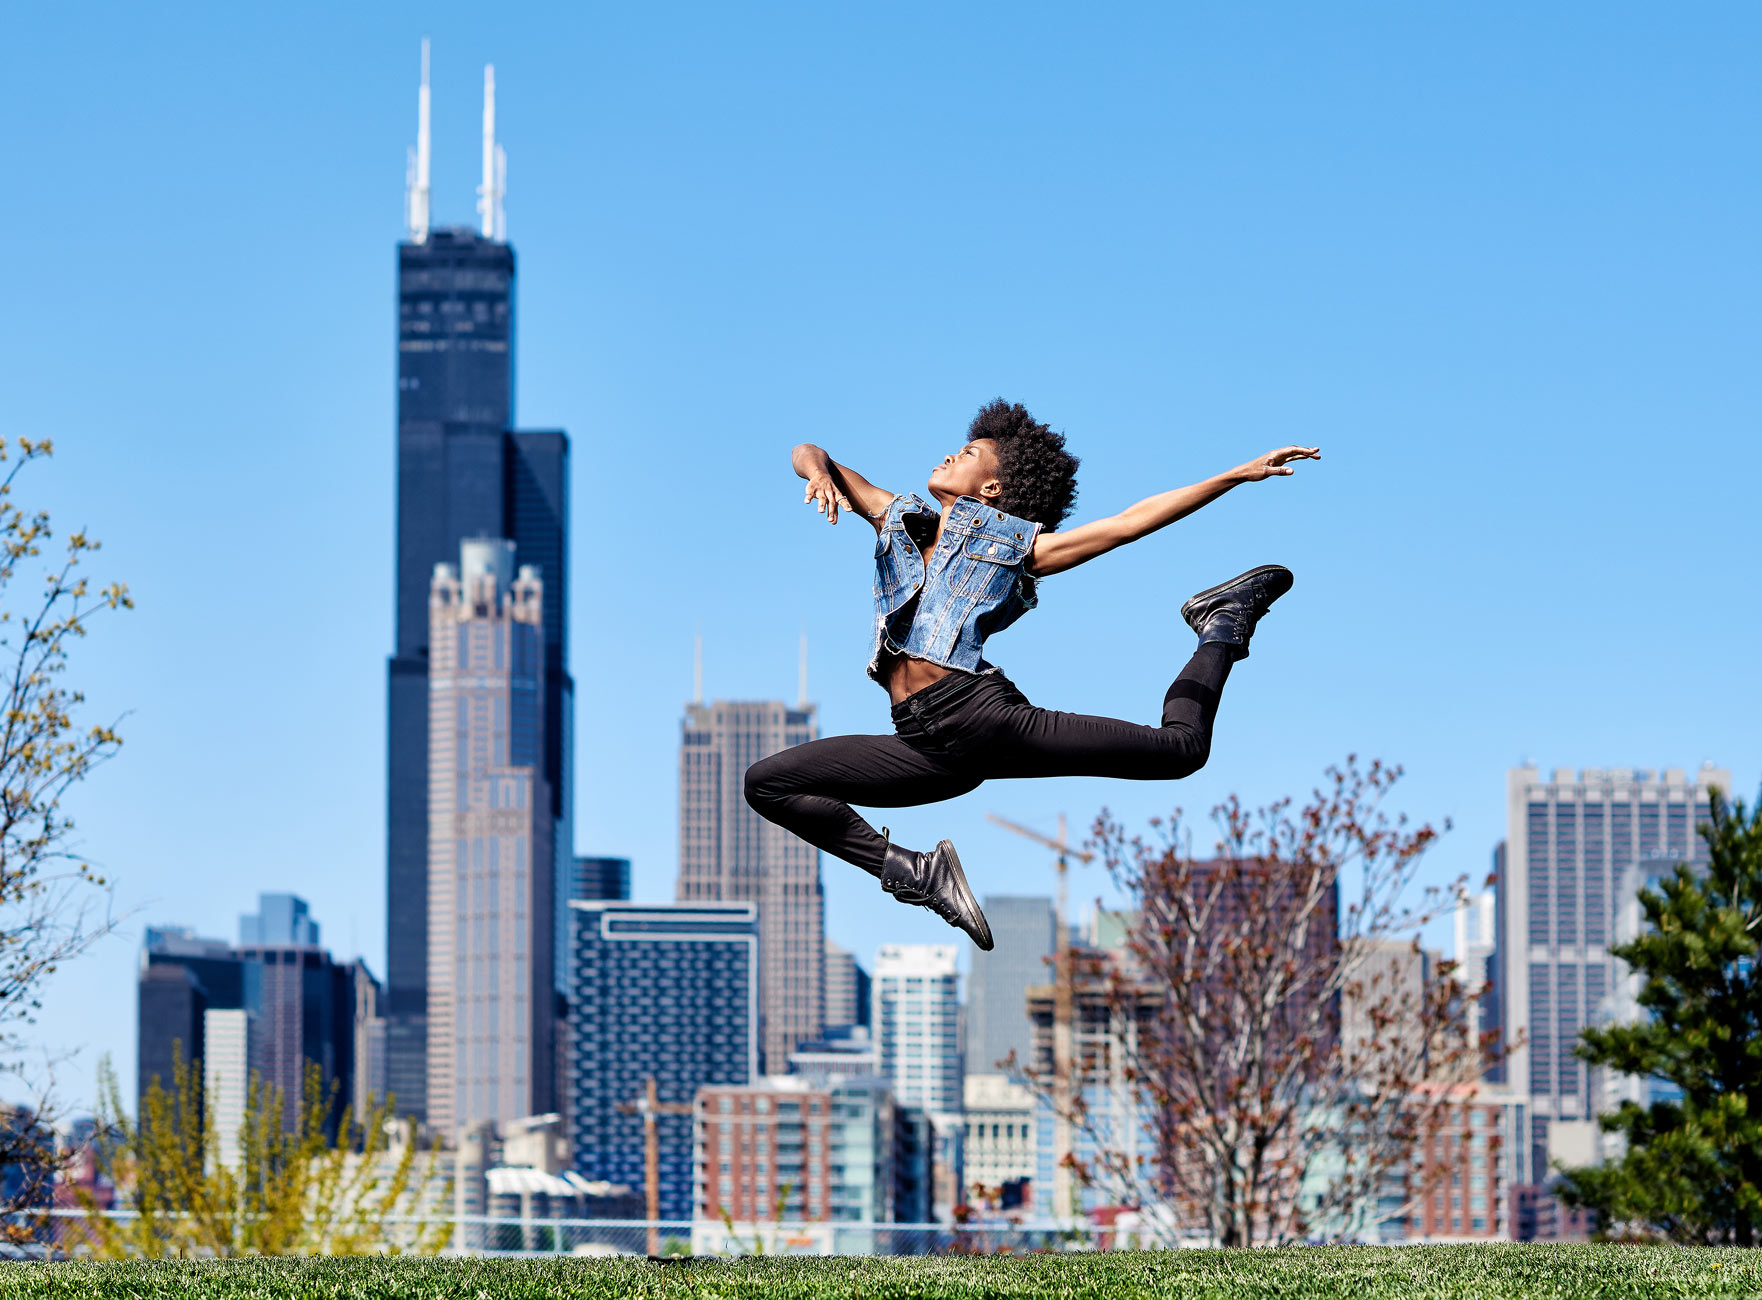 Dancer jumping with the Sears tower in background in Chicago.